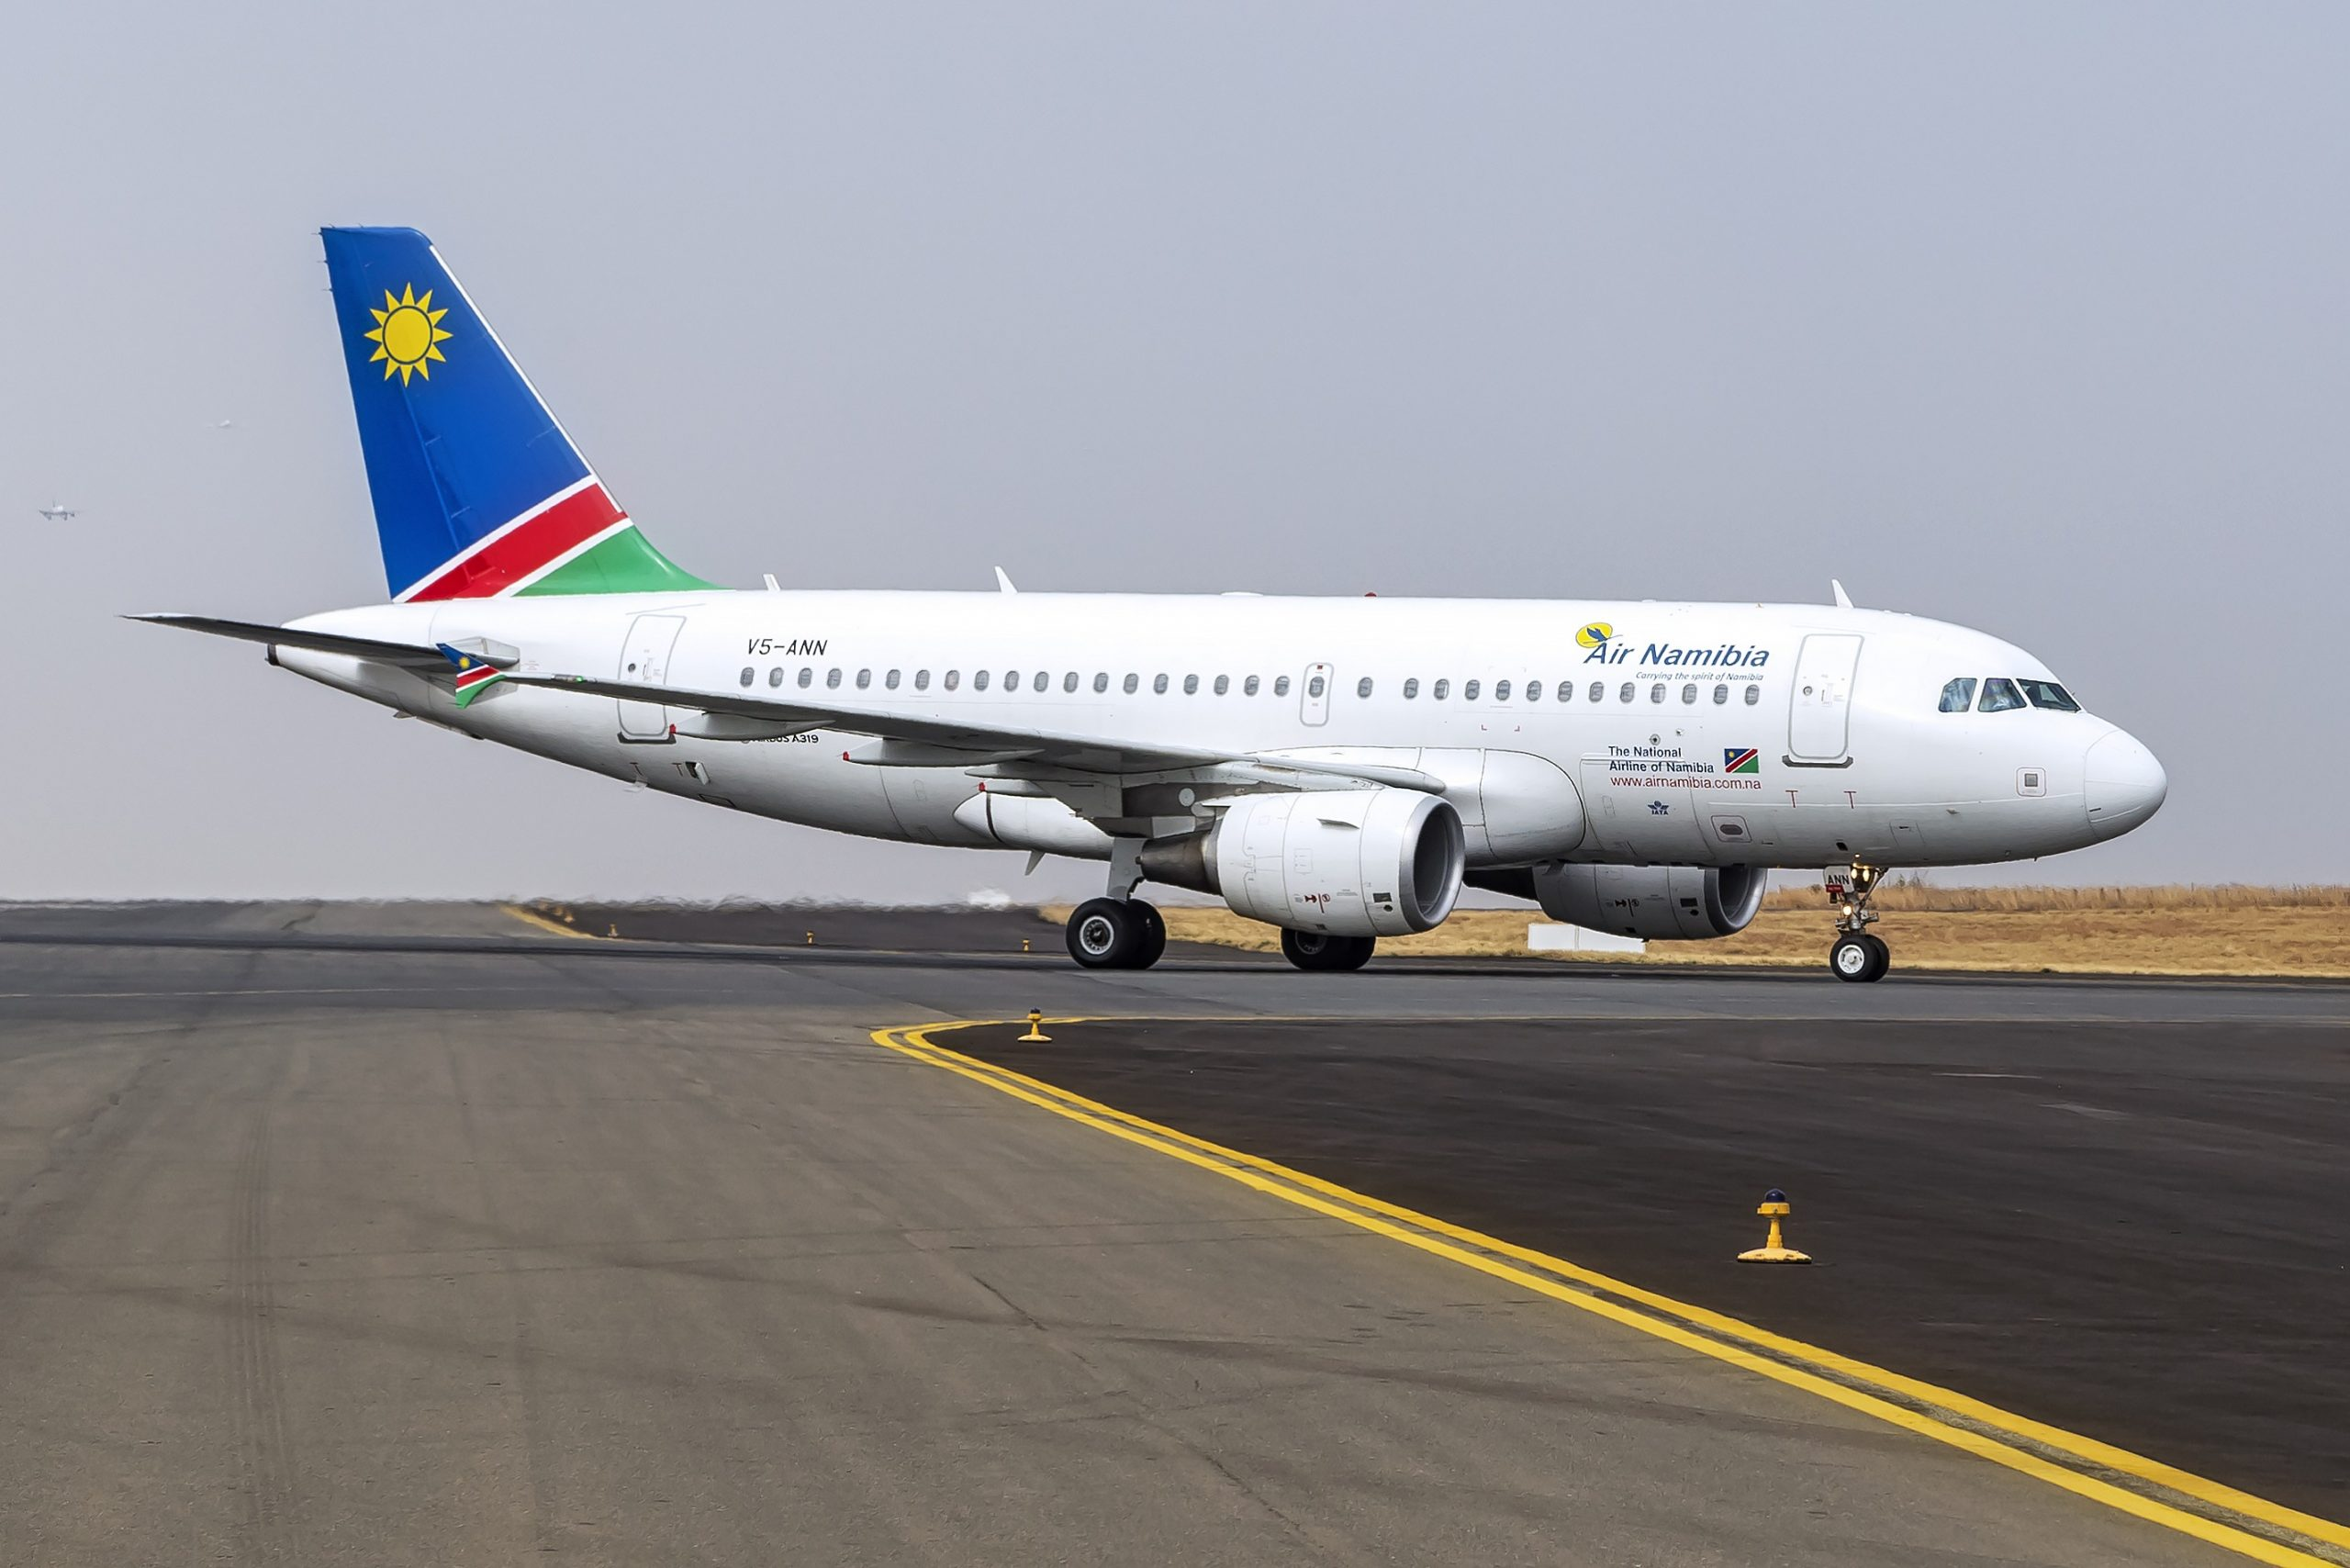 An Air Namibia Airbus A319-100 (Photo: Air Namibia)